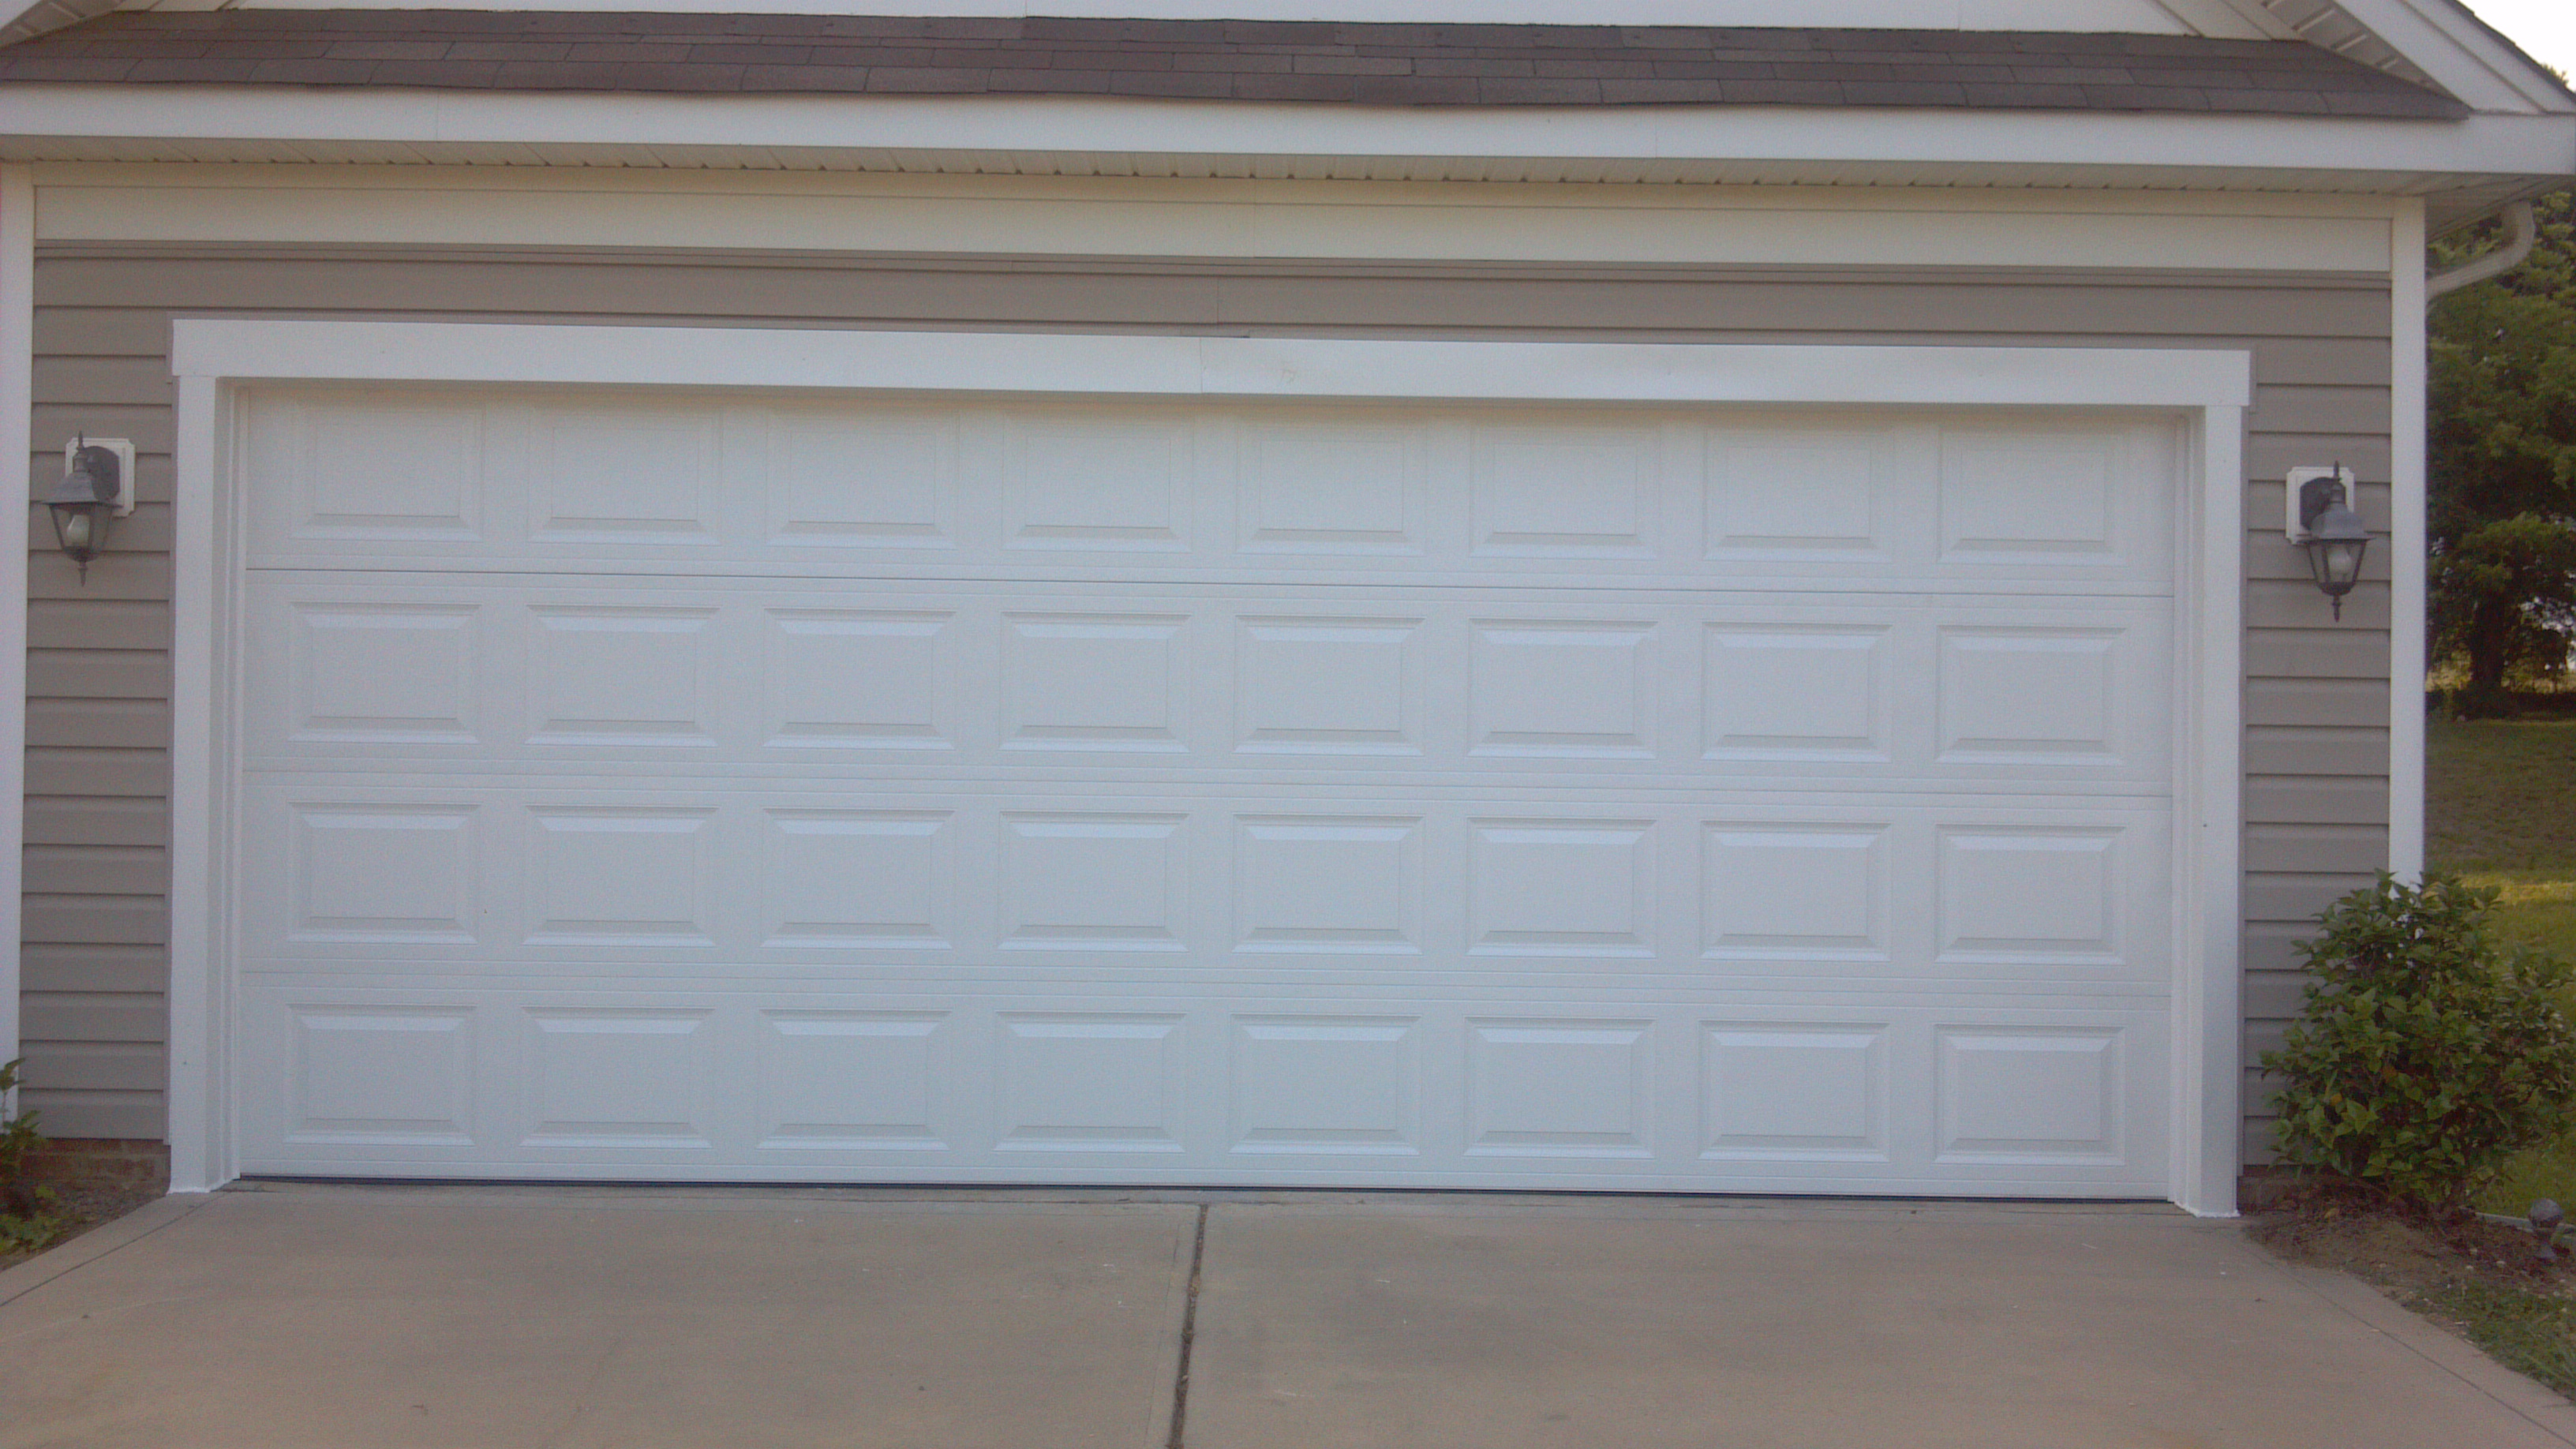 Garage doors double large and beautiful photos photo to for 2 door garage door